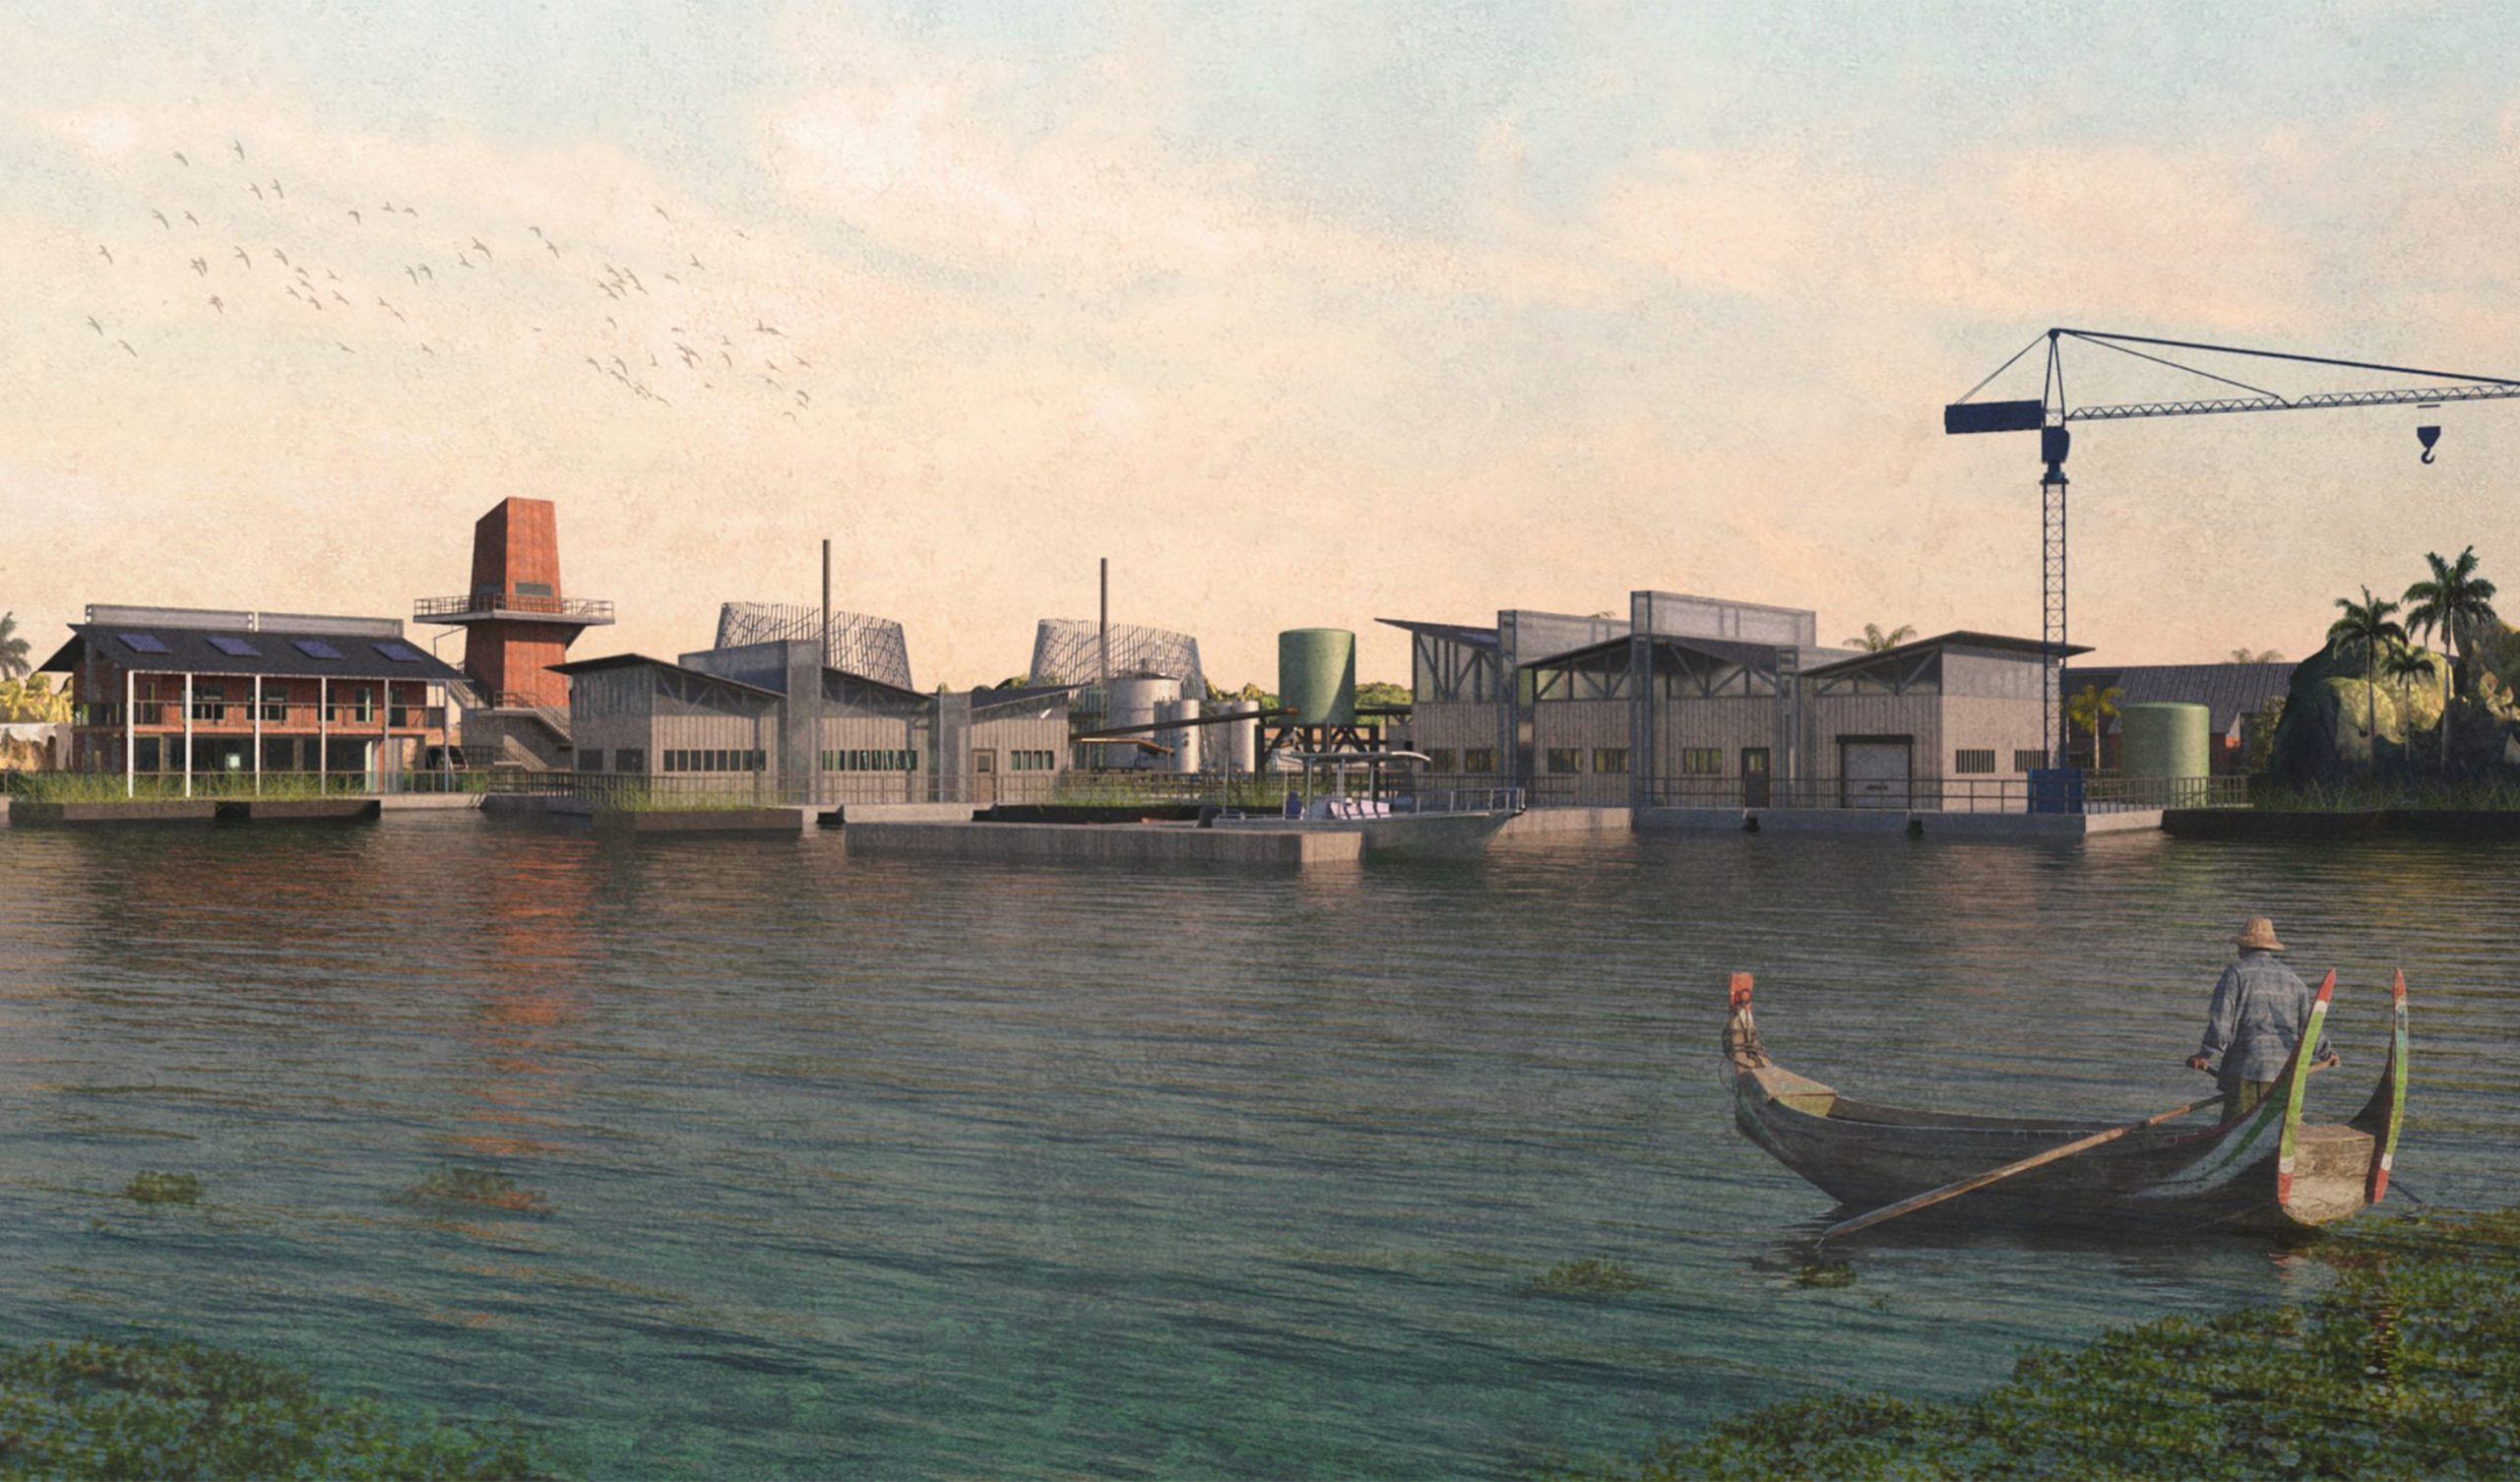 Cover image showing the site from the water